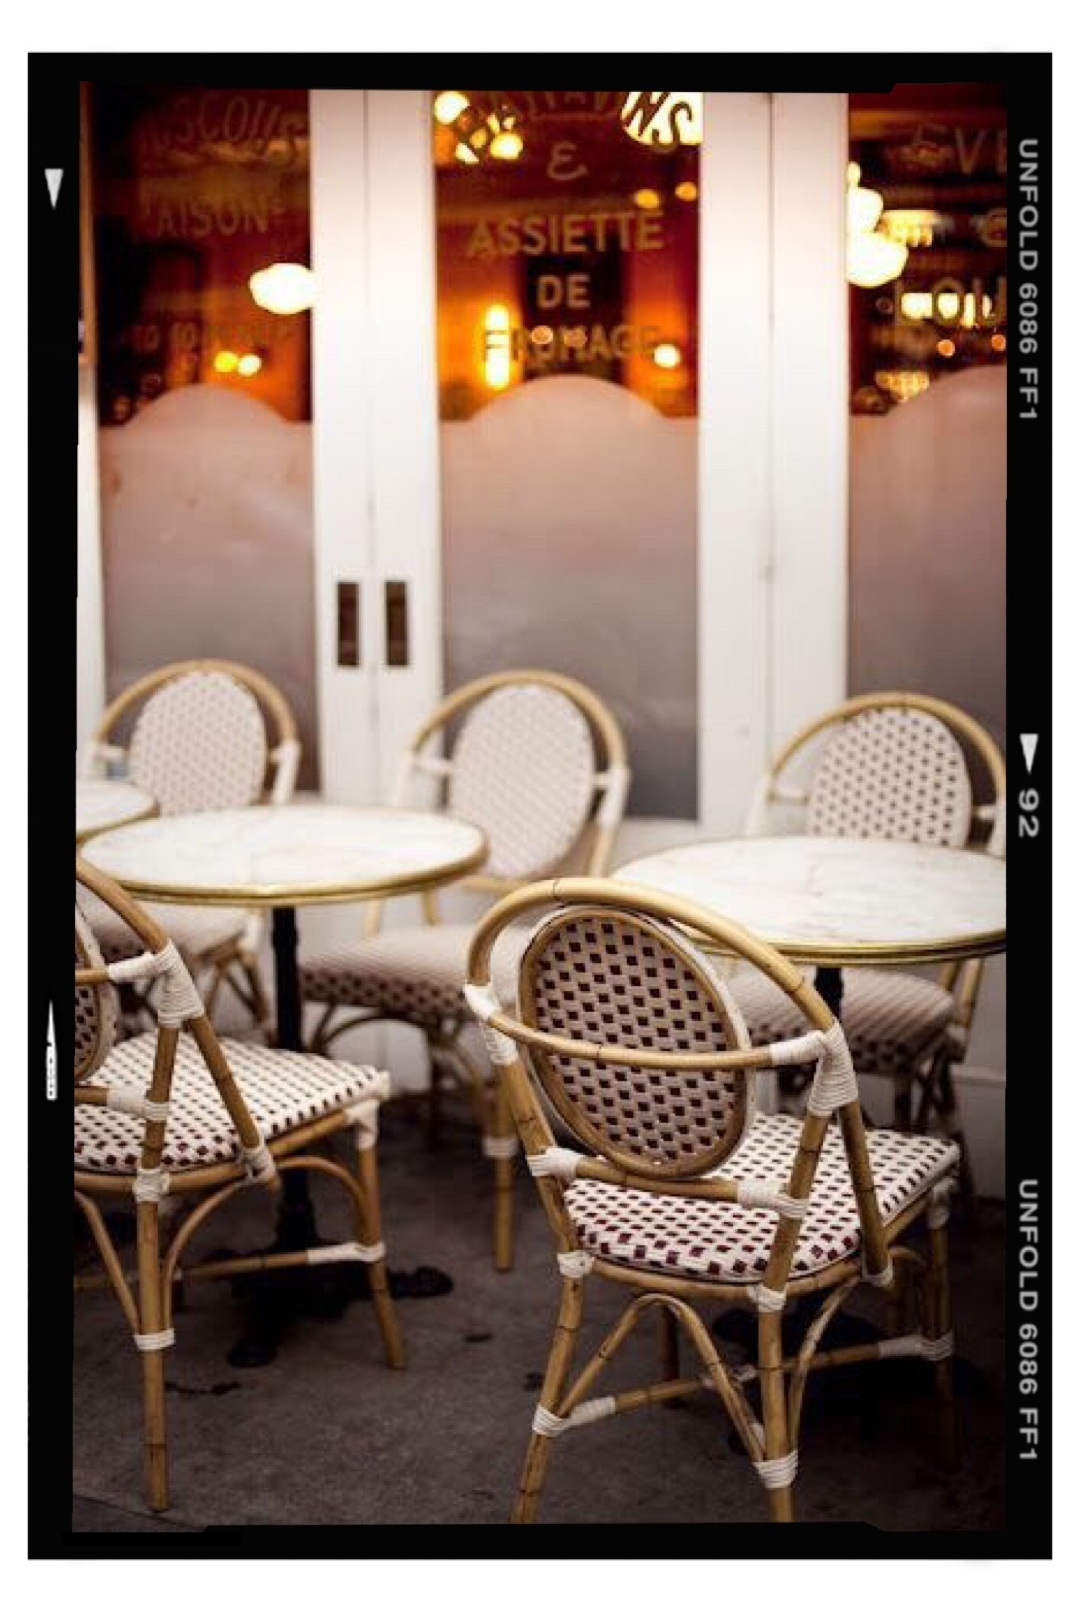 Bistro chairs are my weakness… - I gravitate towards them… their unique shapes, woven patterns and colors. They are the perfect classic chair for any kitchen nook, dining area or outdoor fête.